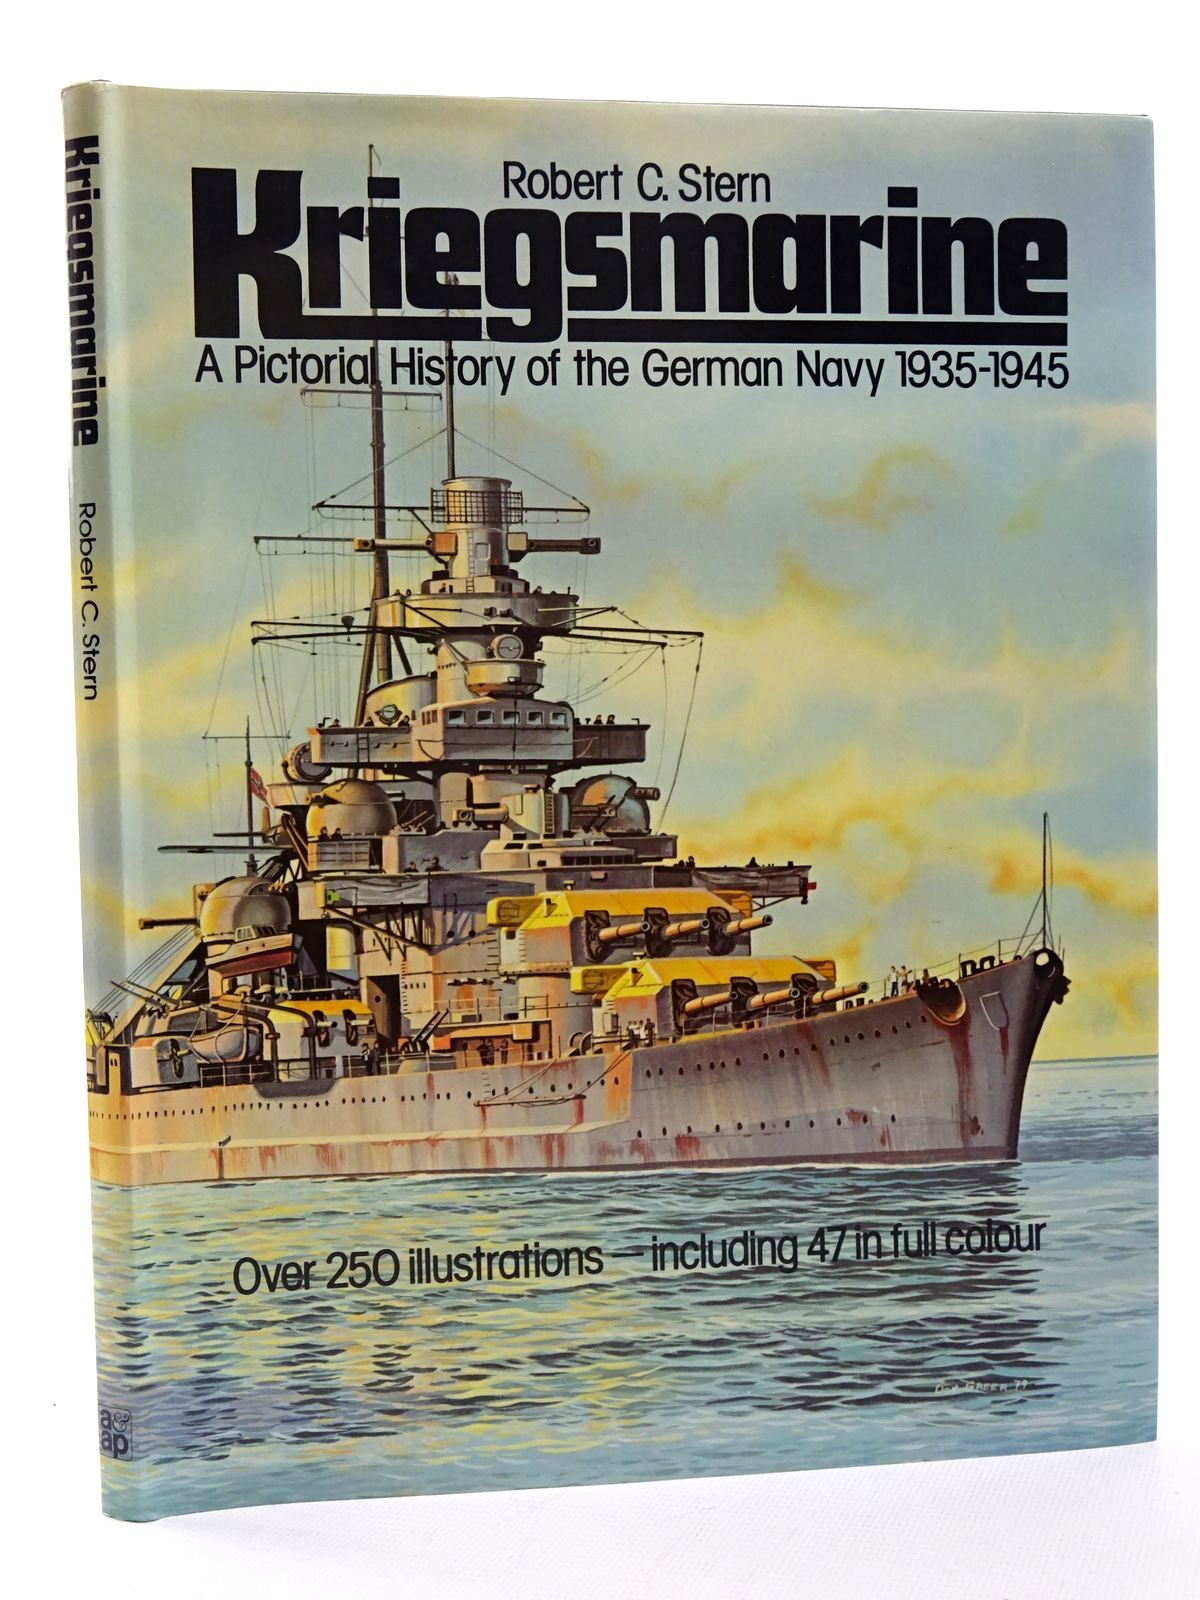 Photo of KRIEGSMARINE: A PICTORIAL HISTORY OF THE GERMAN NAVY 1935-1945 written by Stern, Robert C. illustrated by Greer, Don Stern, Robert C. published by Arms & Armour Press (STOCK CODE: 1815663)  for sale by Stella & Rose's Books